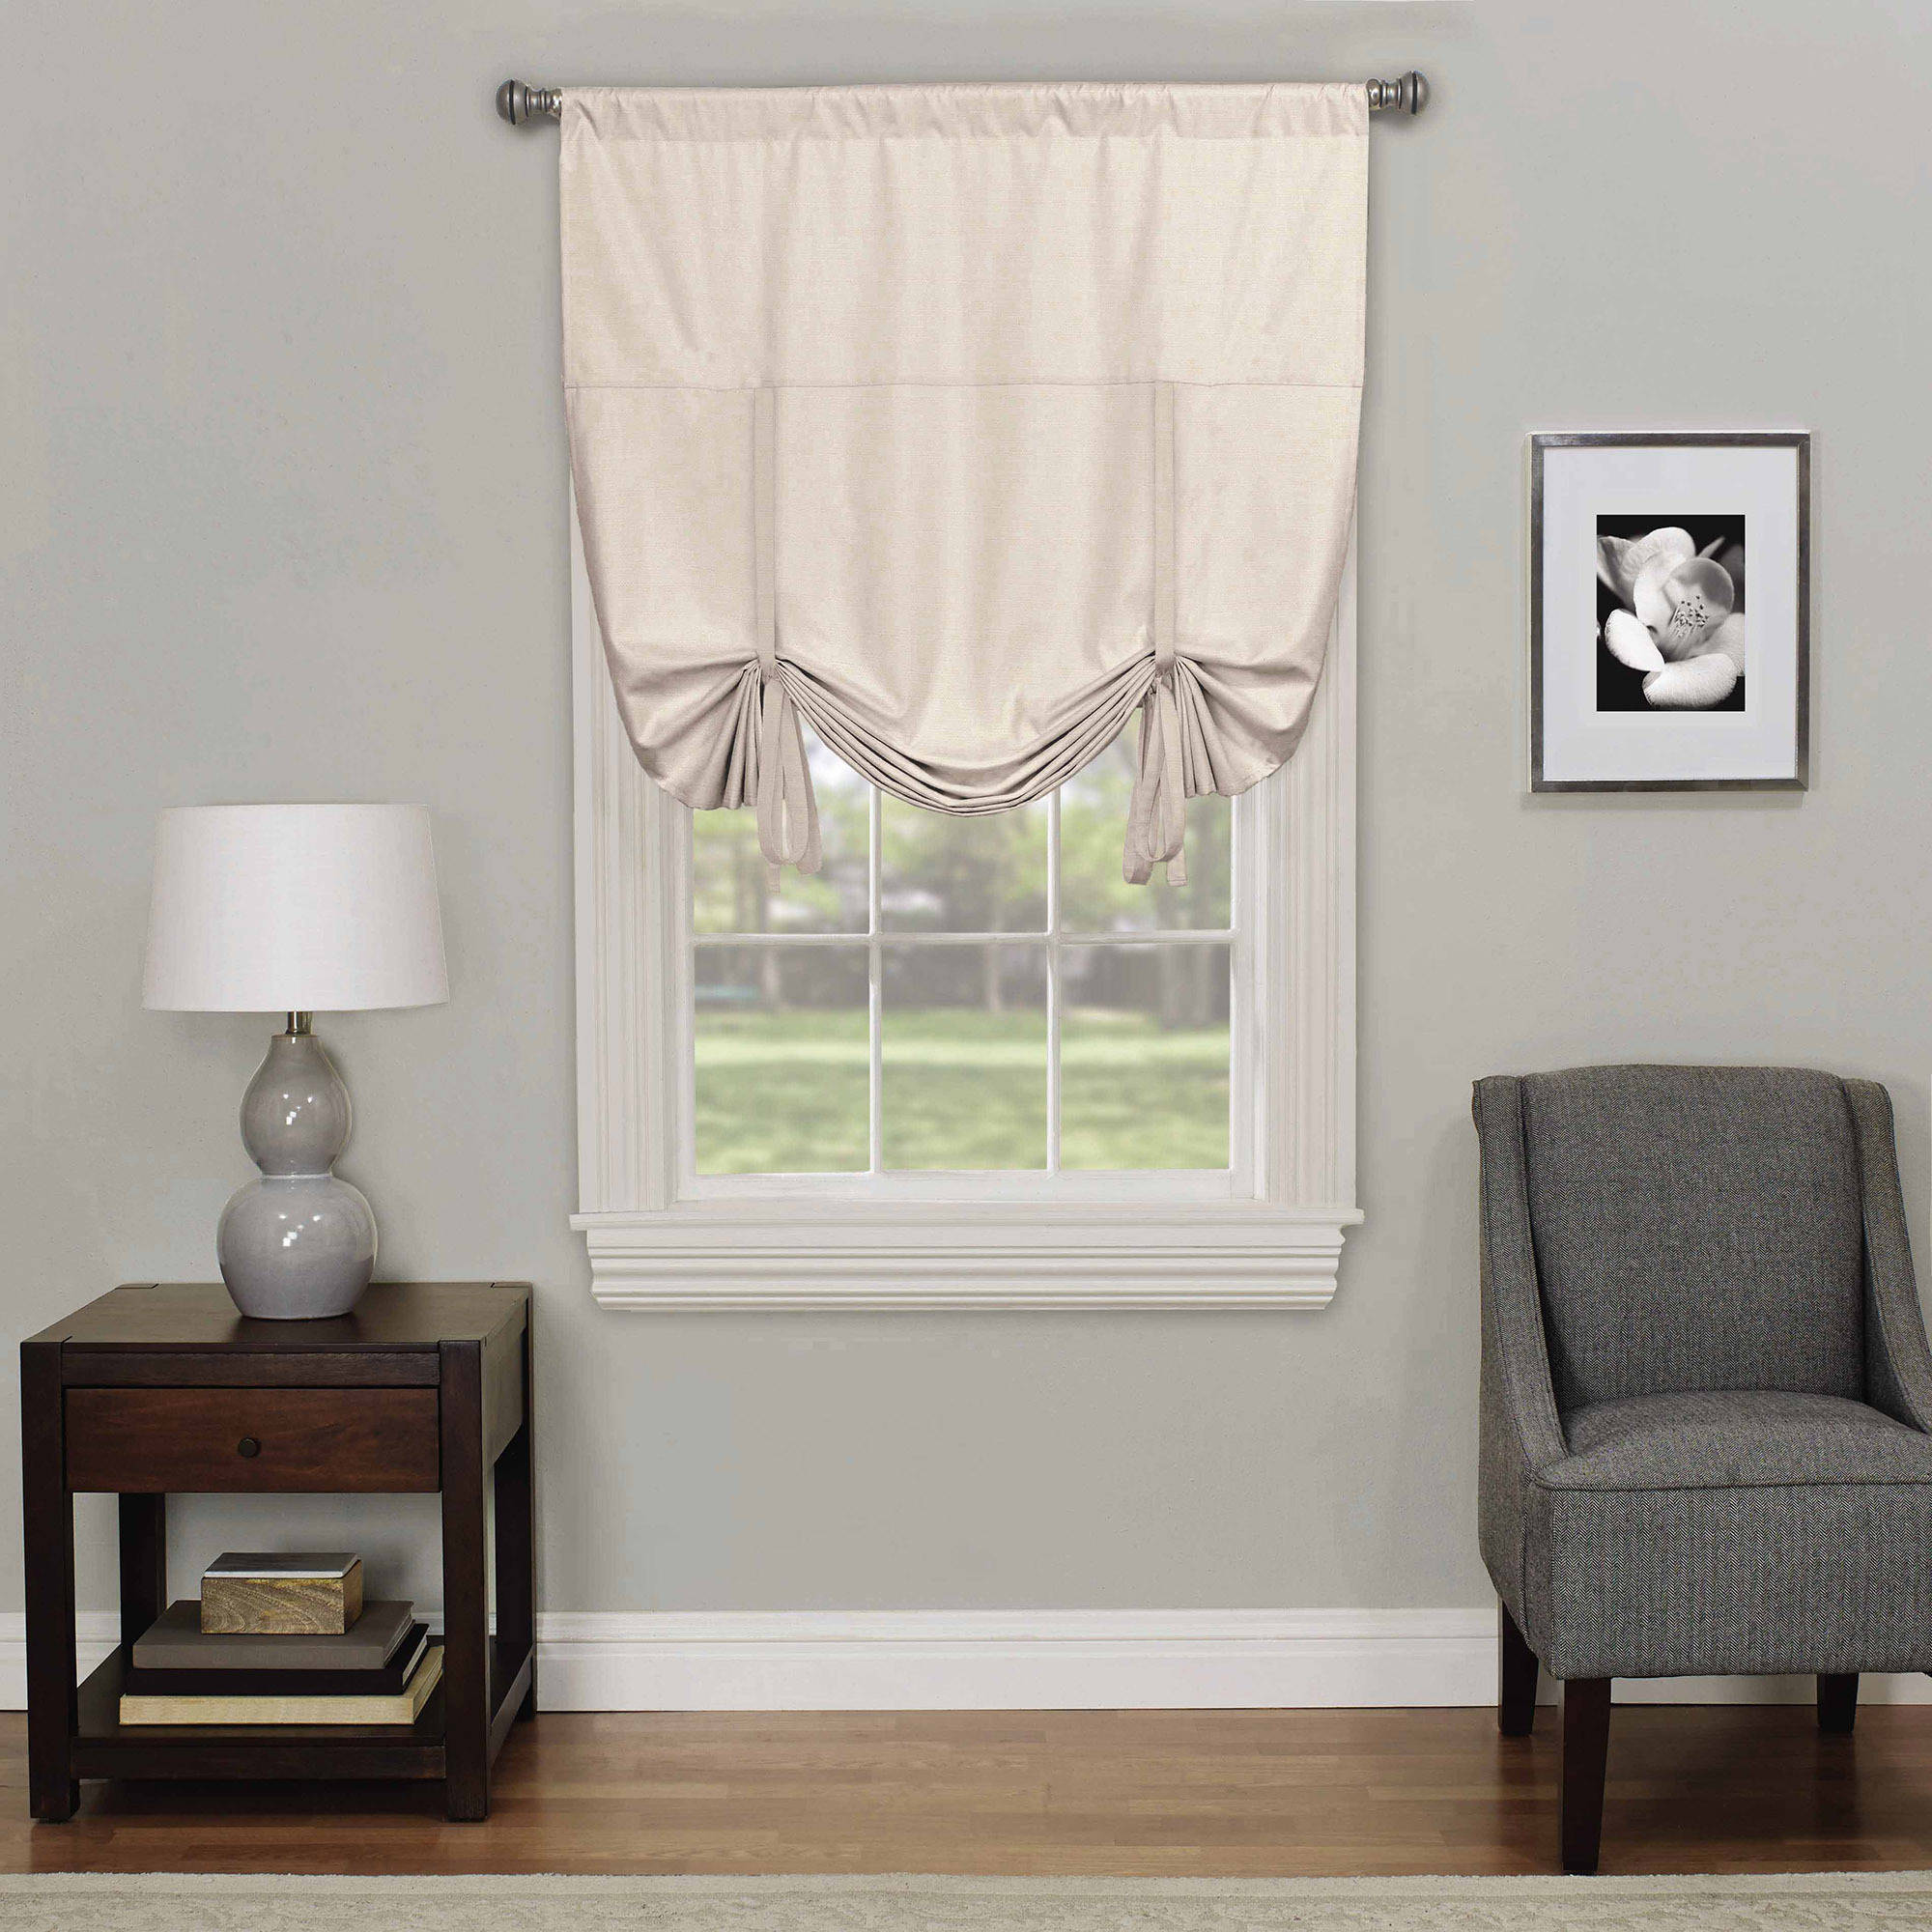 wood fascinating sliding best blinds side tiny horizontal pinterest with marvelous vinyl table made square sizes door patio excellent curtain of mini narrow inspirational shade inch walmart window from ideas